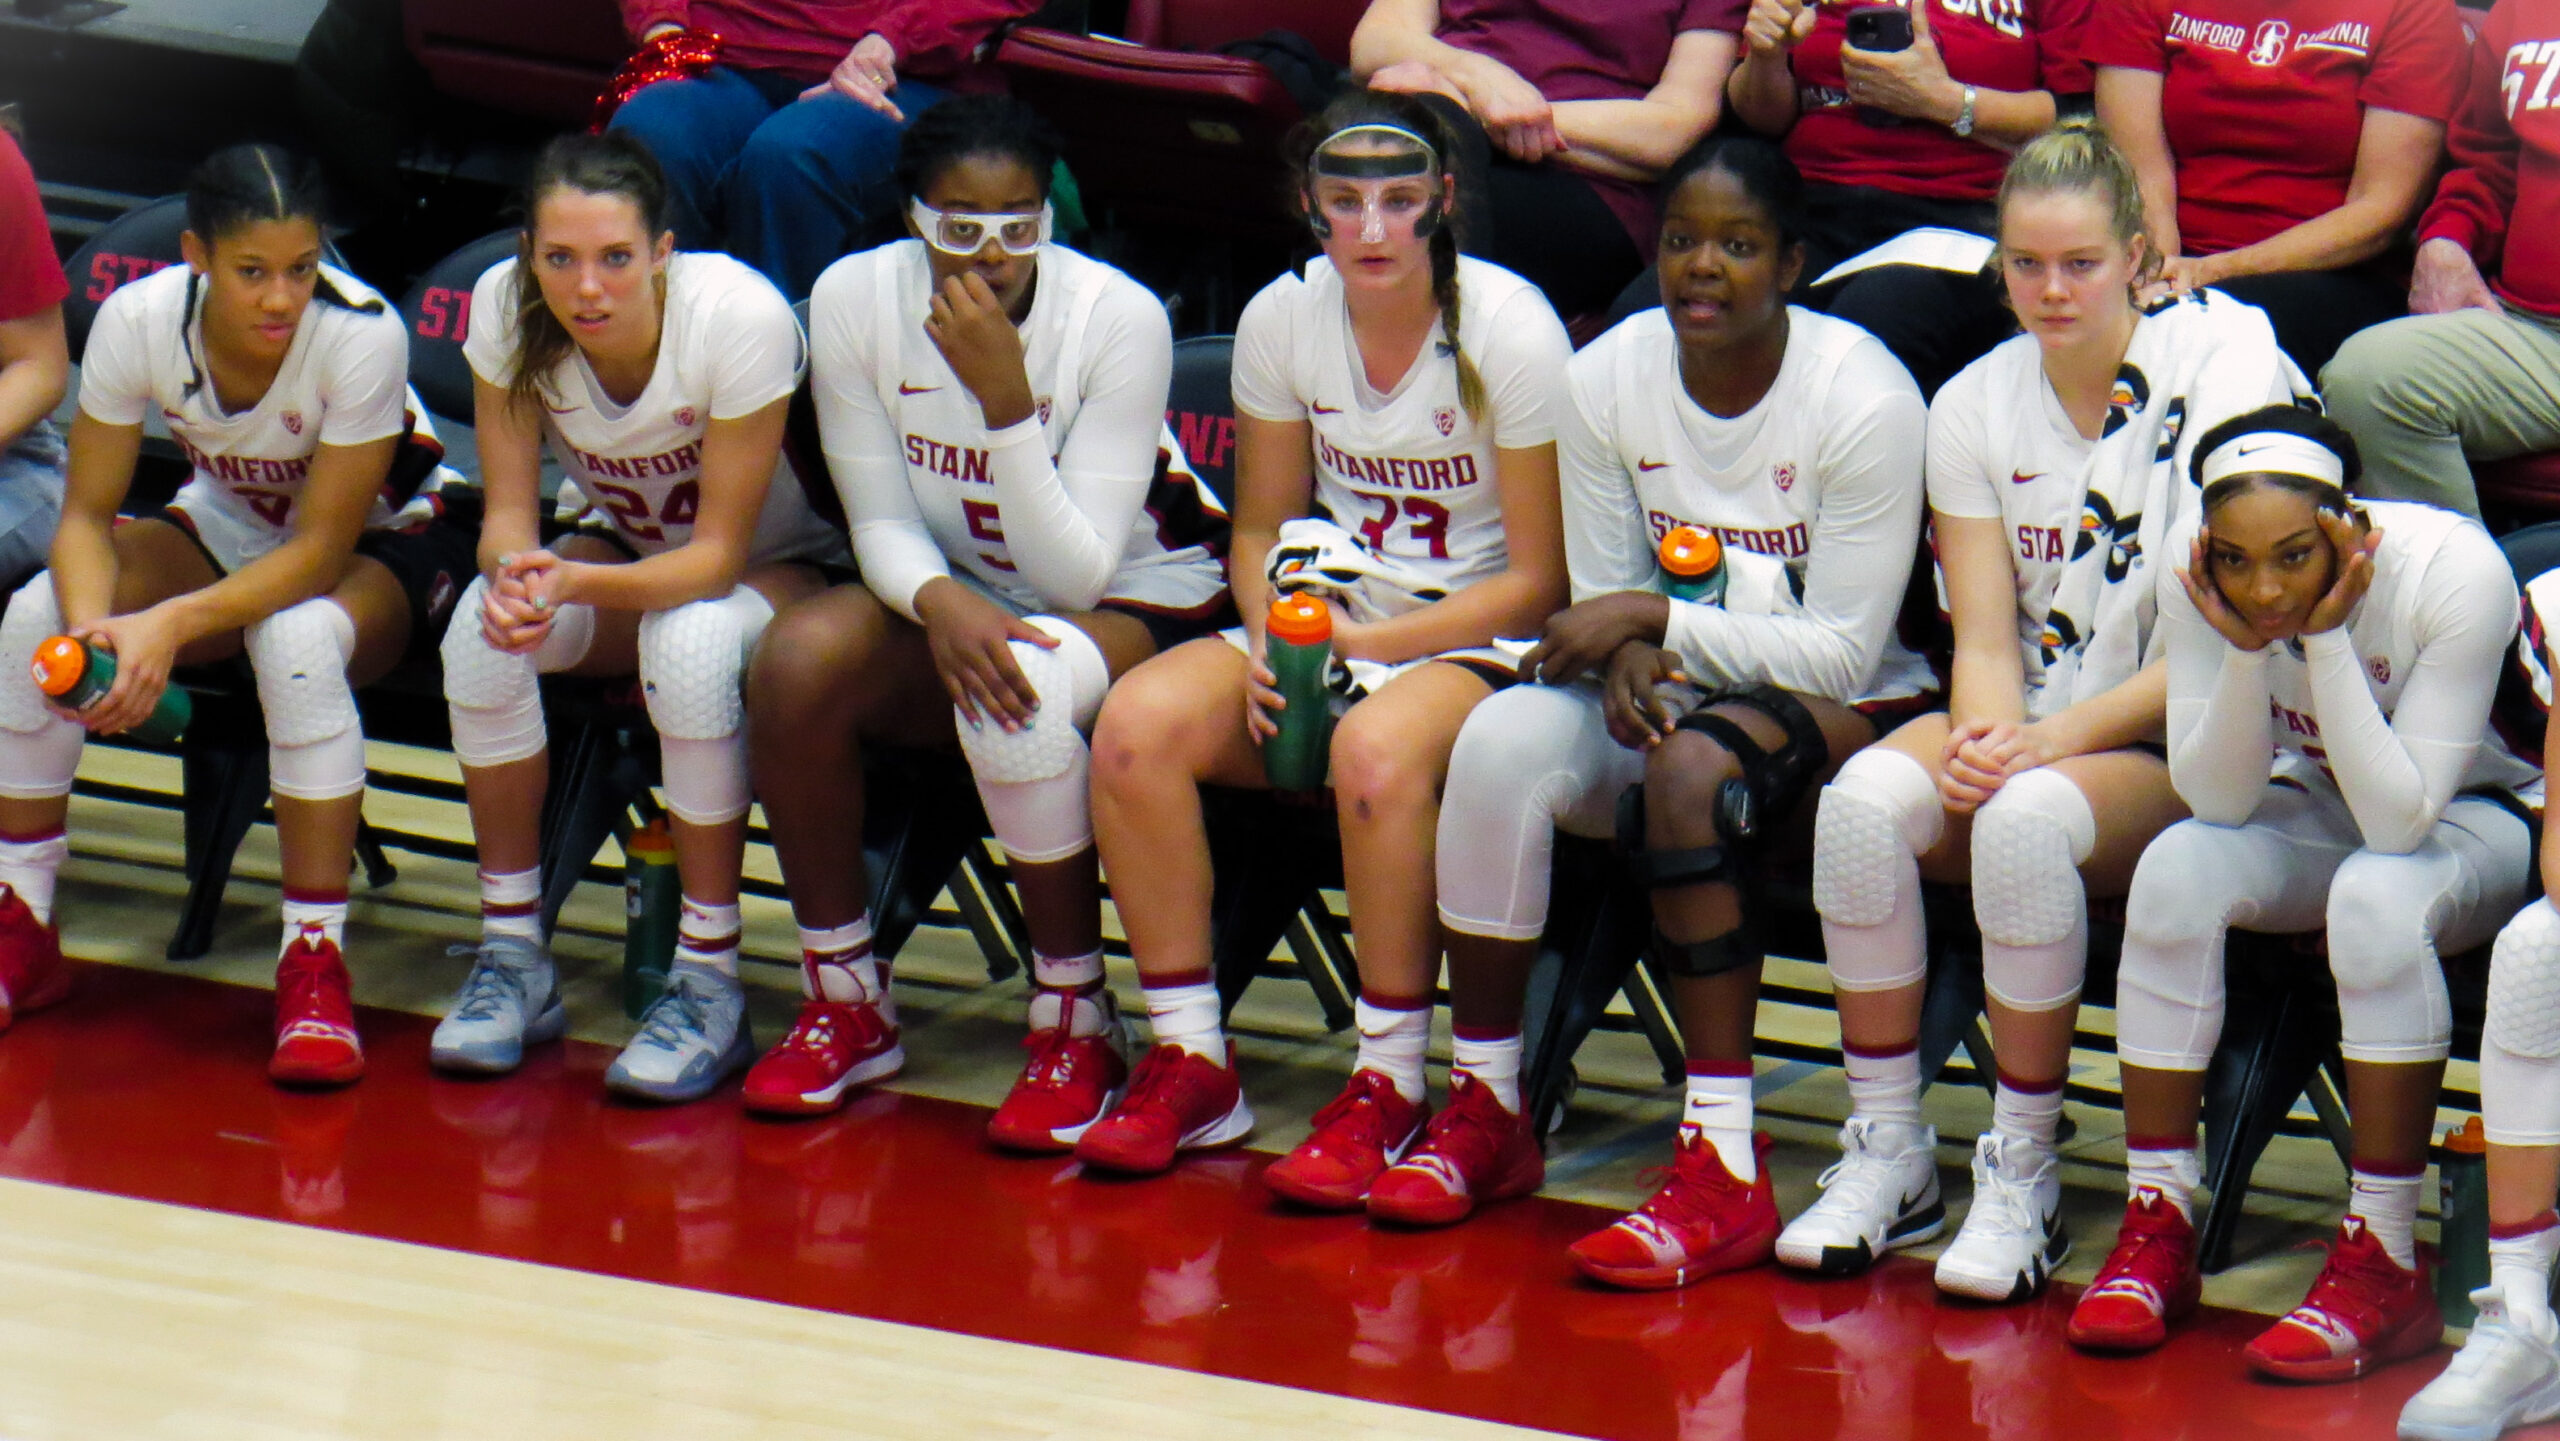 STI/Hoopfeed Poll: More upsets and steep drops but Stanford holds steady at No. 1